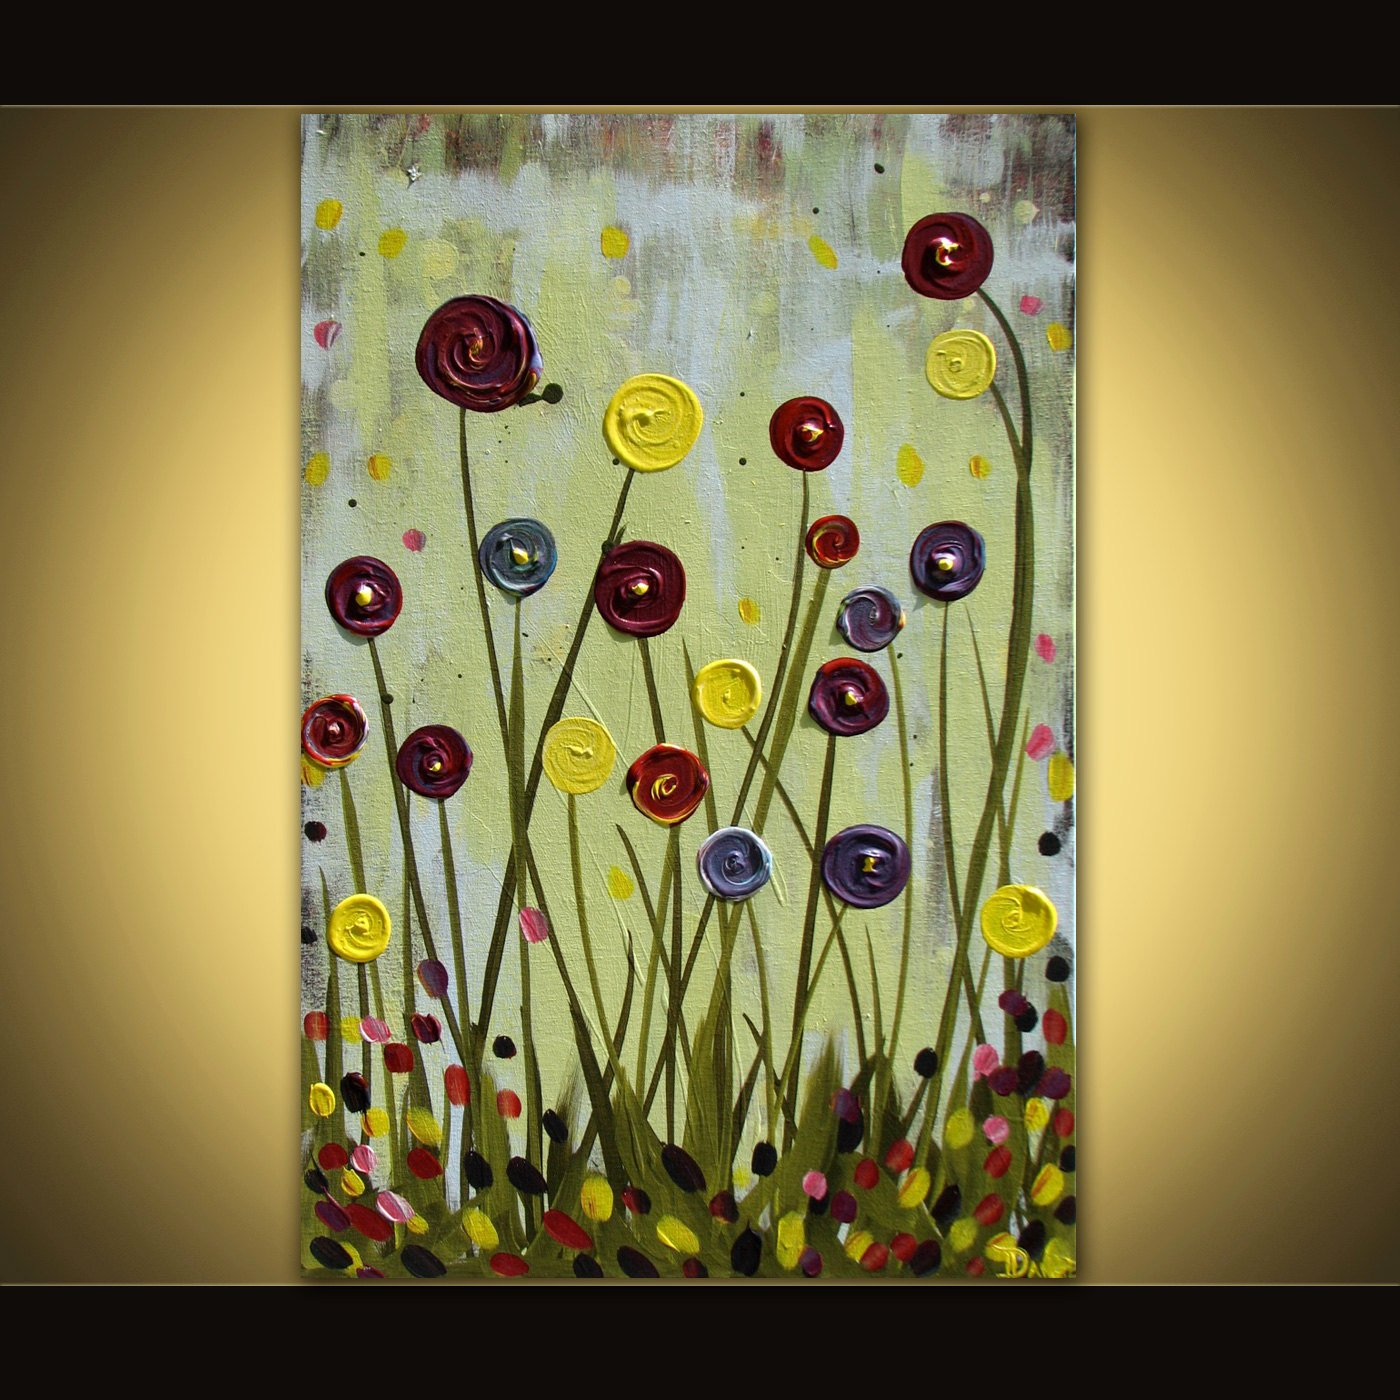 Abstract Painting Of Flowers Inspirational original Flower Painting Abstract Acrylic On Canvas 24x36 Huge